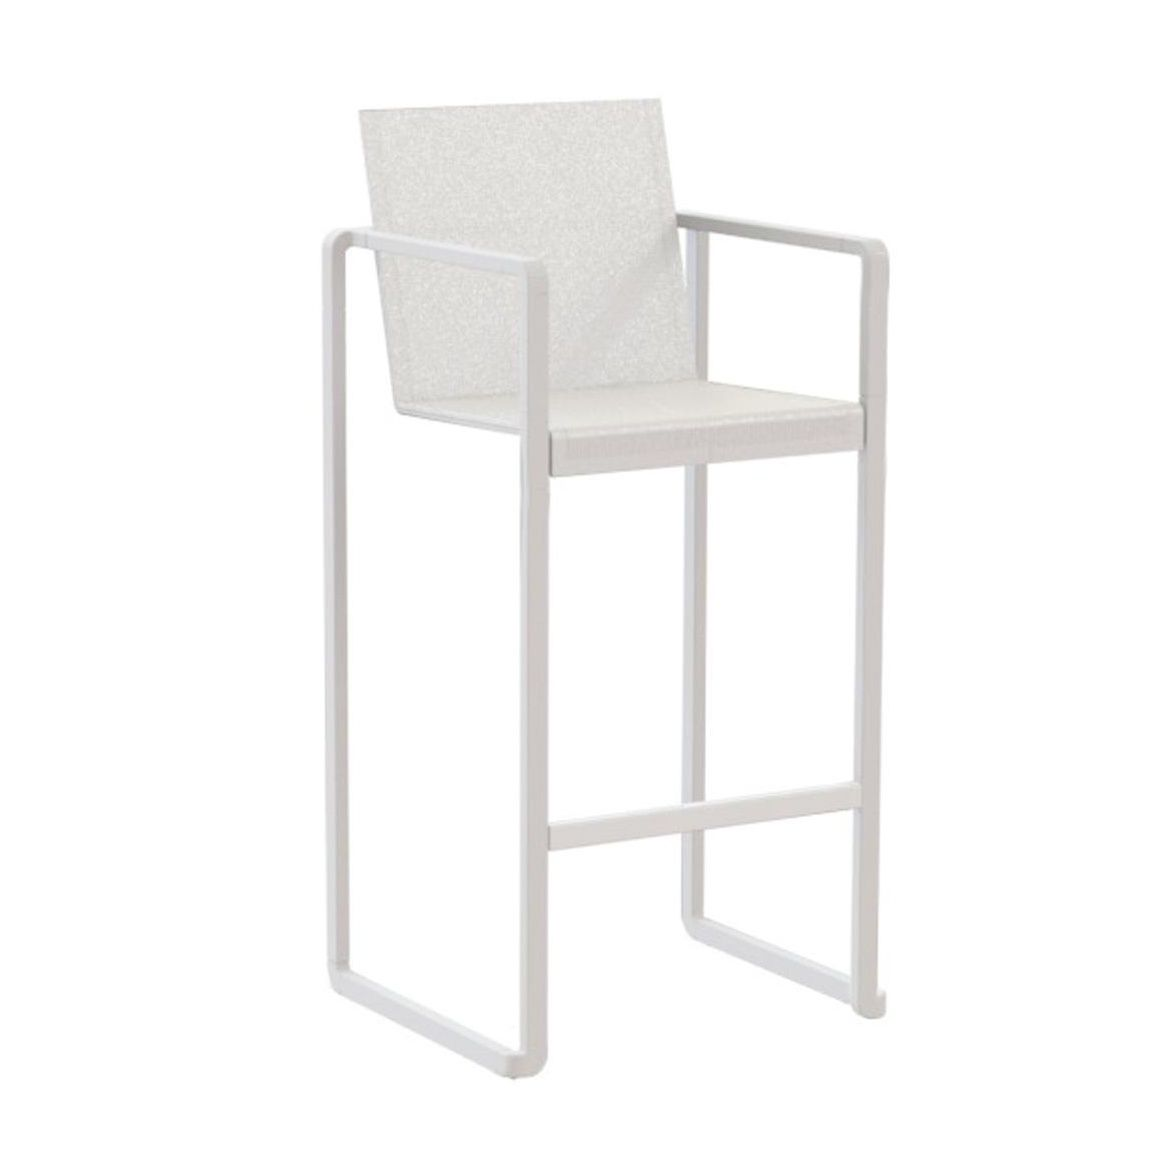 Royal Botania   Alura Bar Stool   White/Batyline